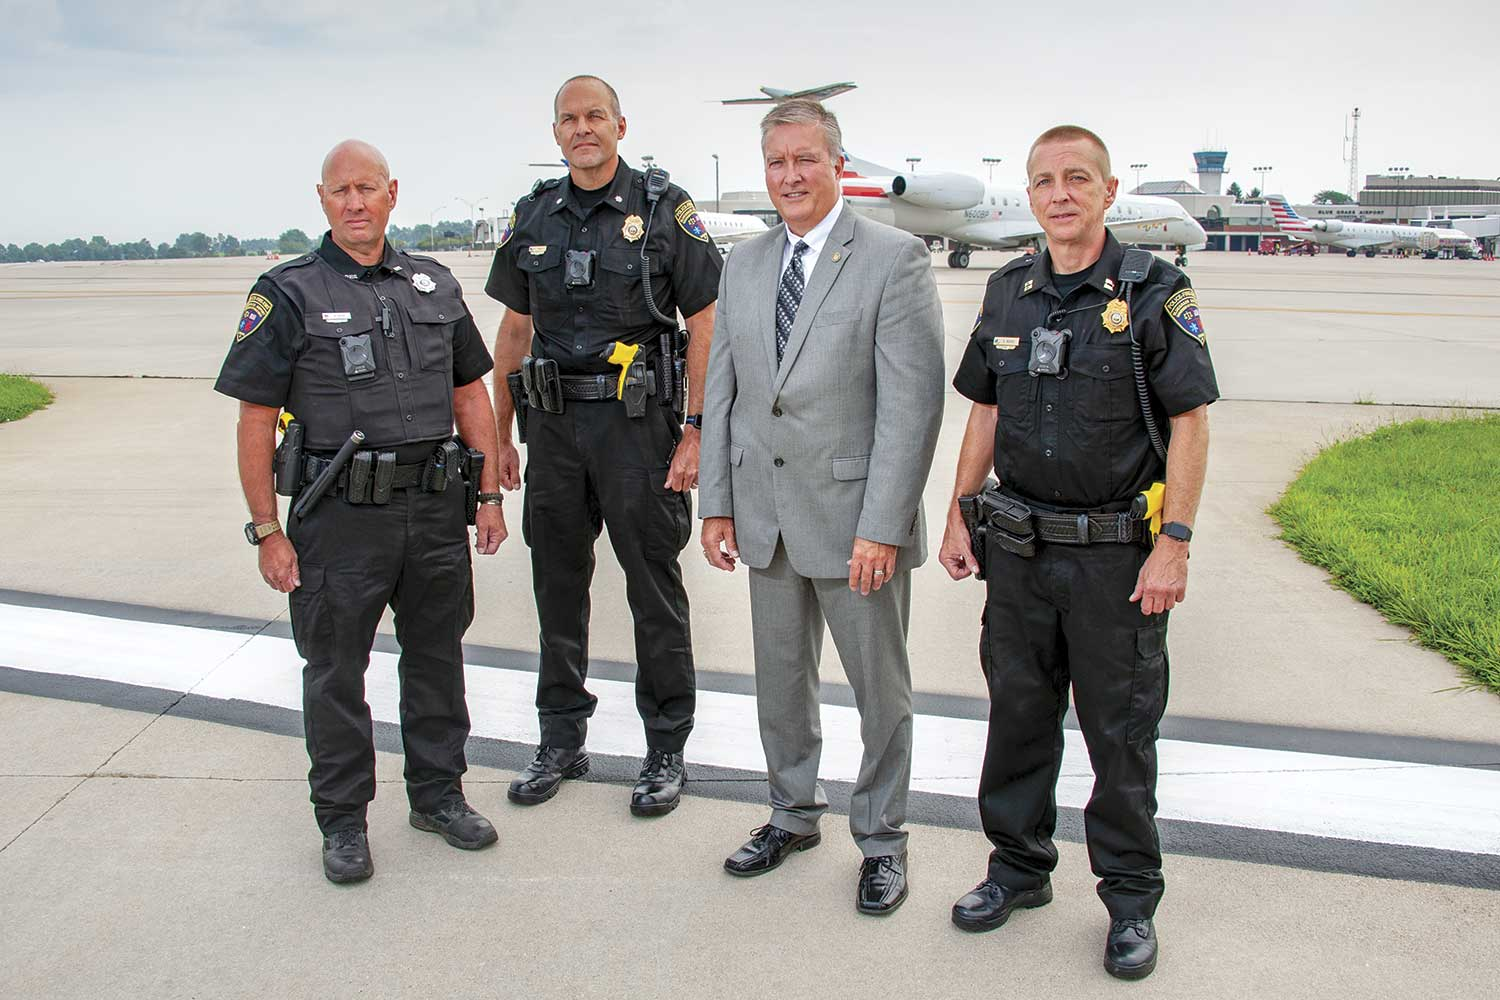 From left-to-right, Blue Grass Airport Public Safety Officer Ken Ridge, Assistant Chief Paul Pungratz, Pubic Safety Director Scott Lanter and Capt. Keith Moore pose on the flight line outside the public safety facility. (Photo by Jim Robertson)